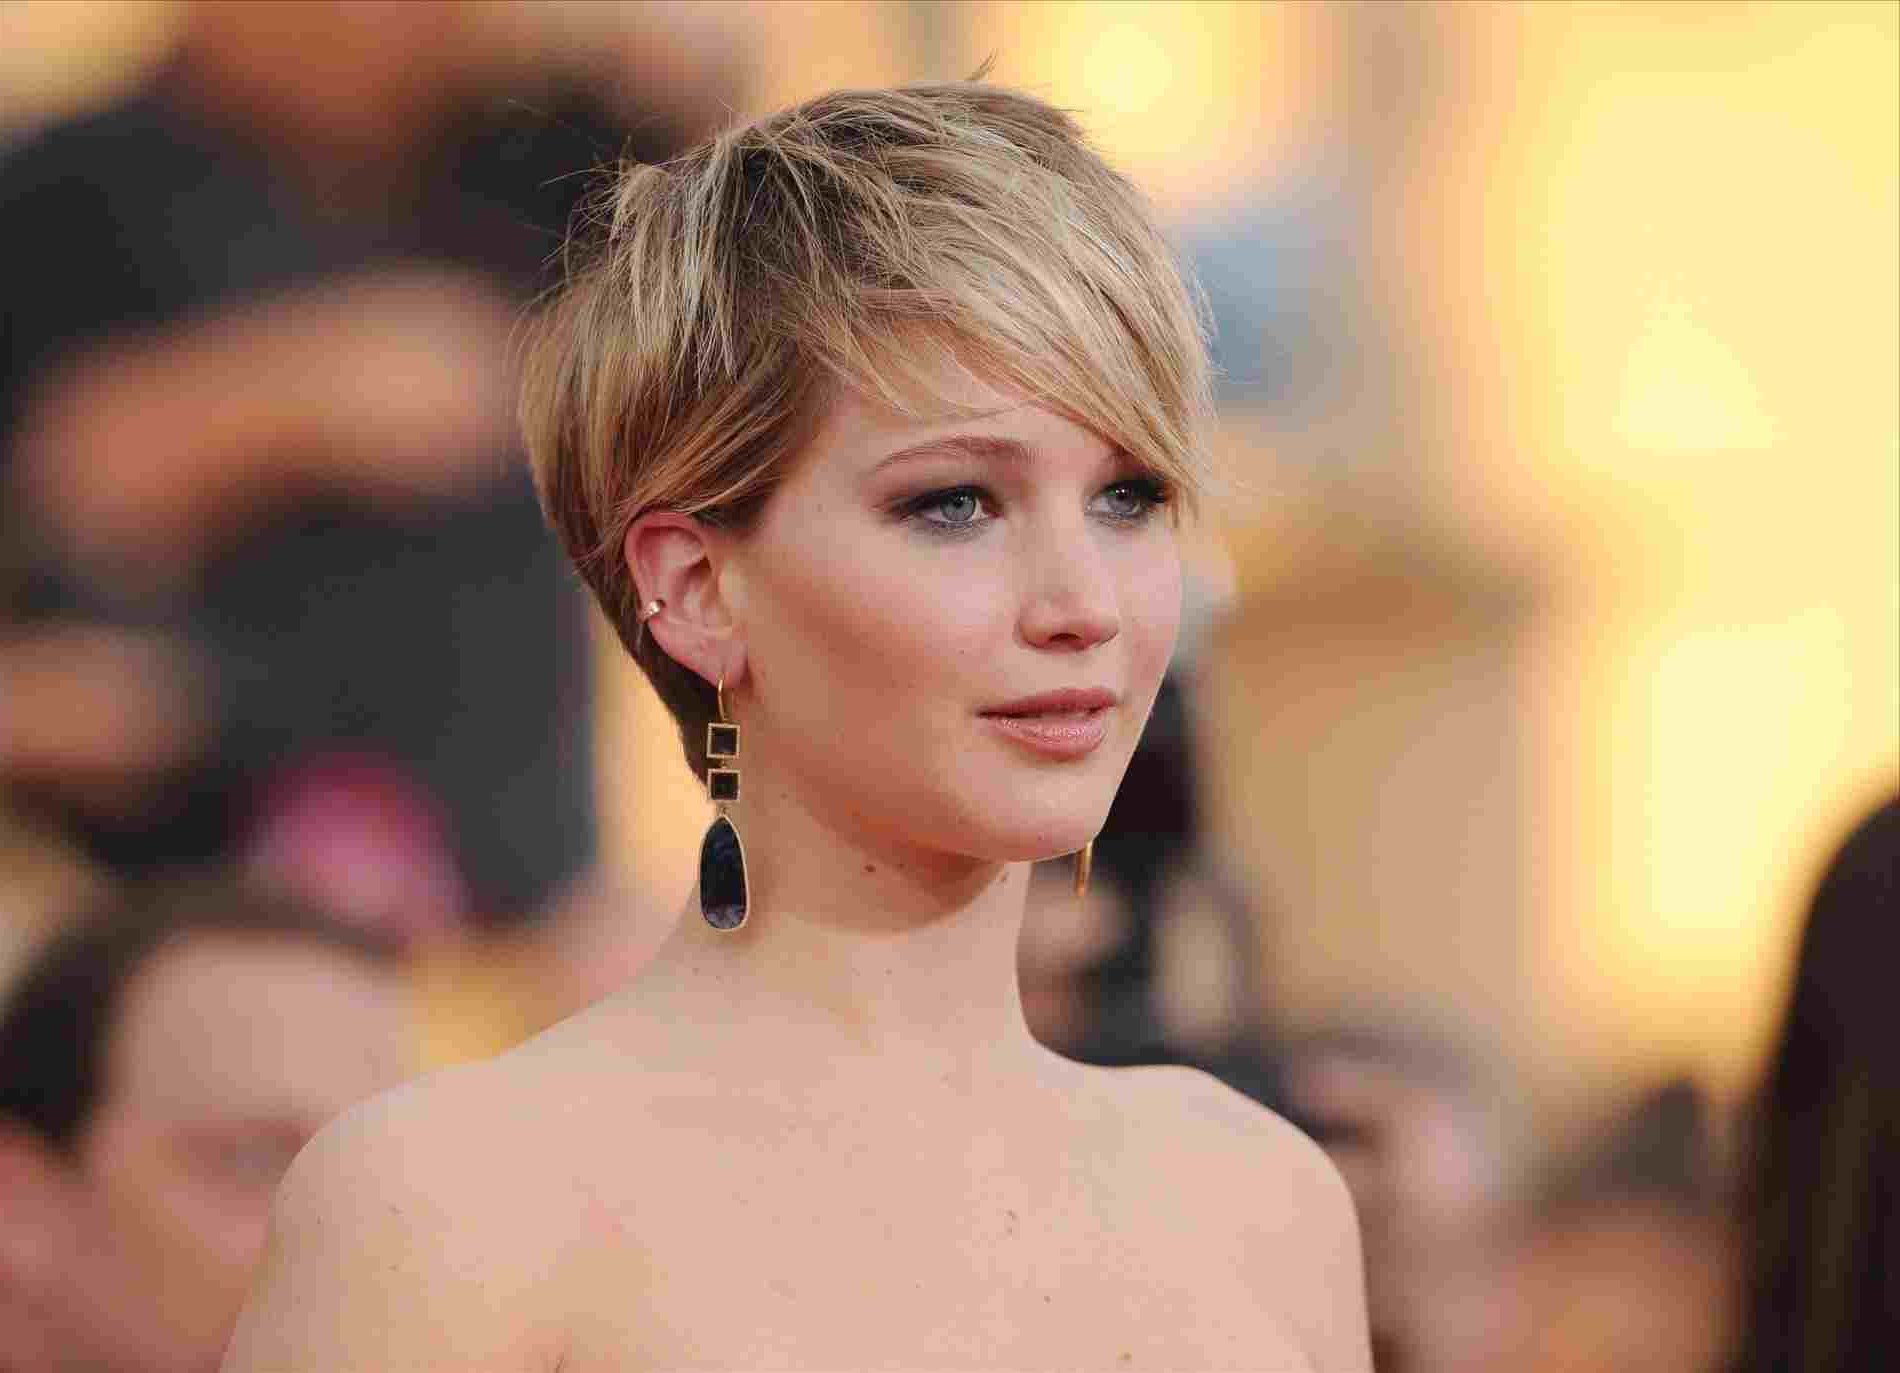 Short Low Maintenance Thick Hair Short Haircuts 2018 Pixie Haircuts Pertaining To Easy Maintenance Short Hairstyles (View 23 of 25)